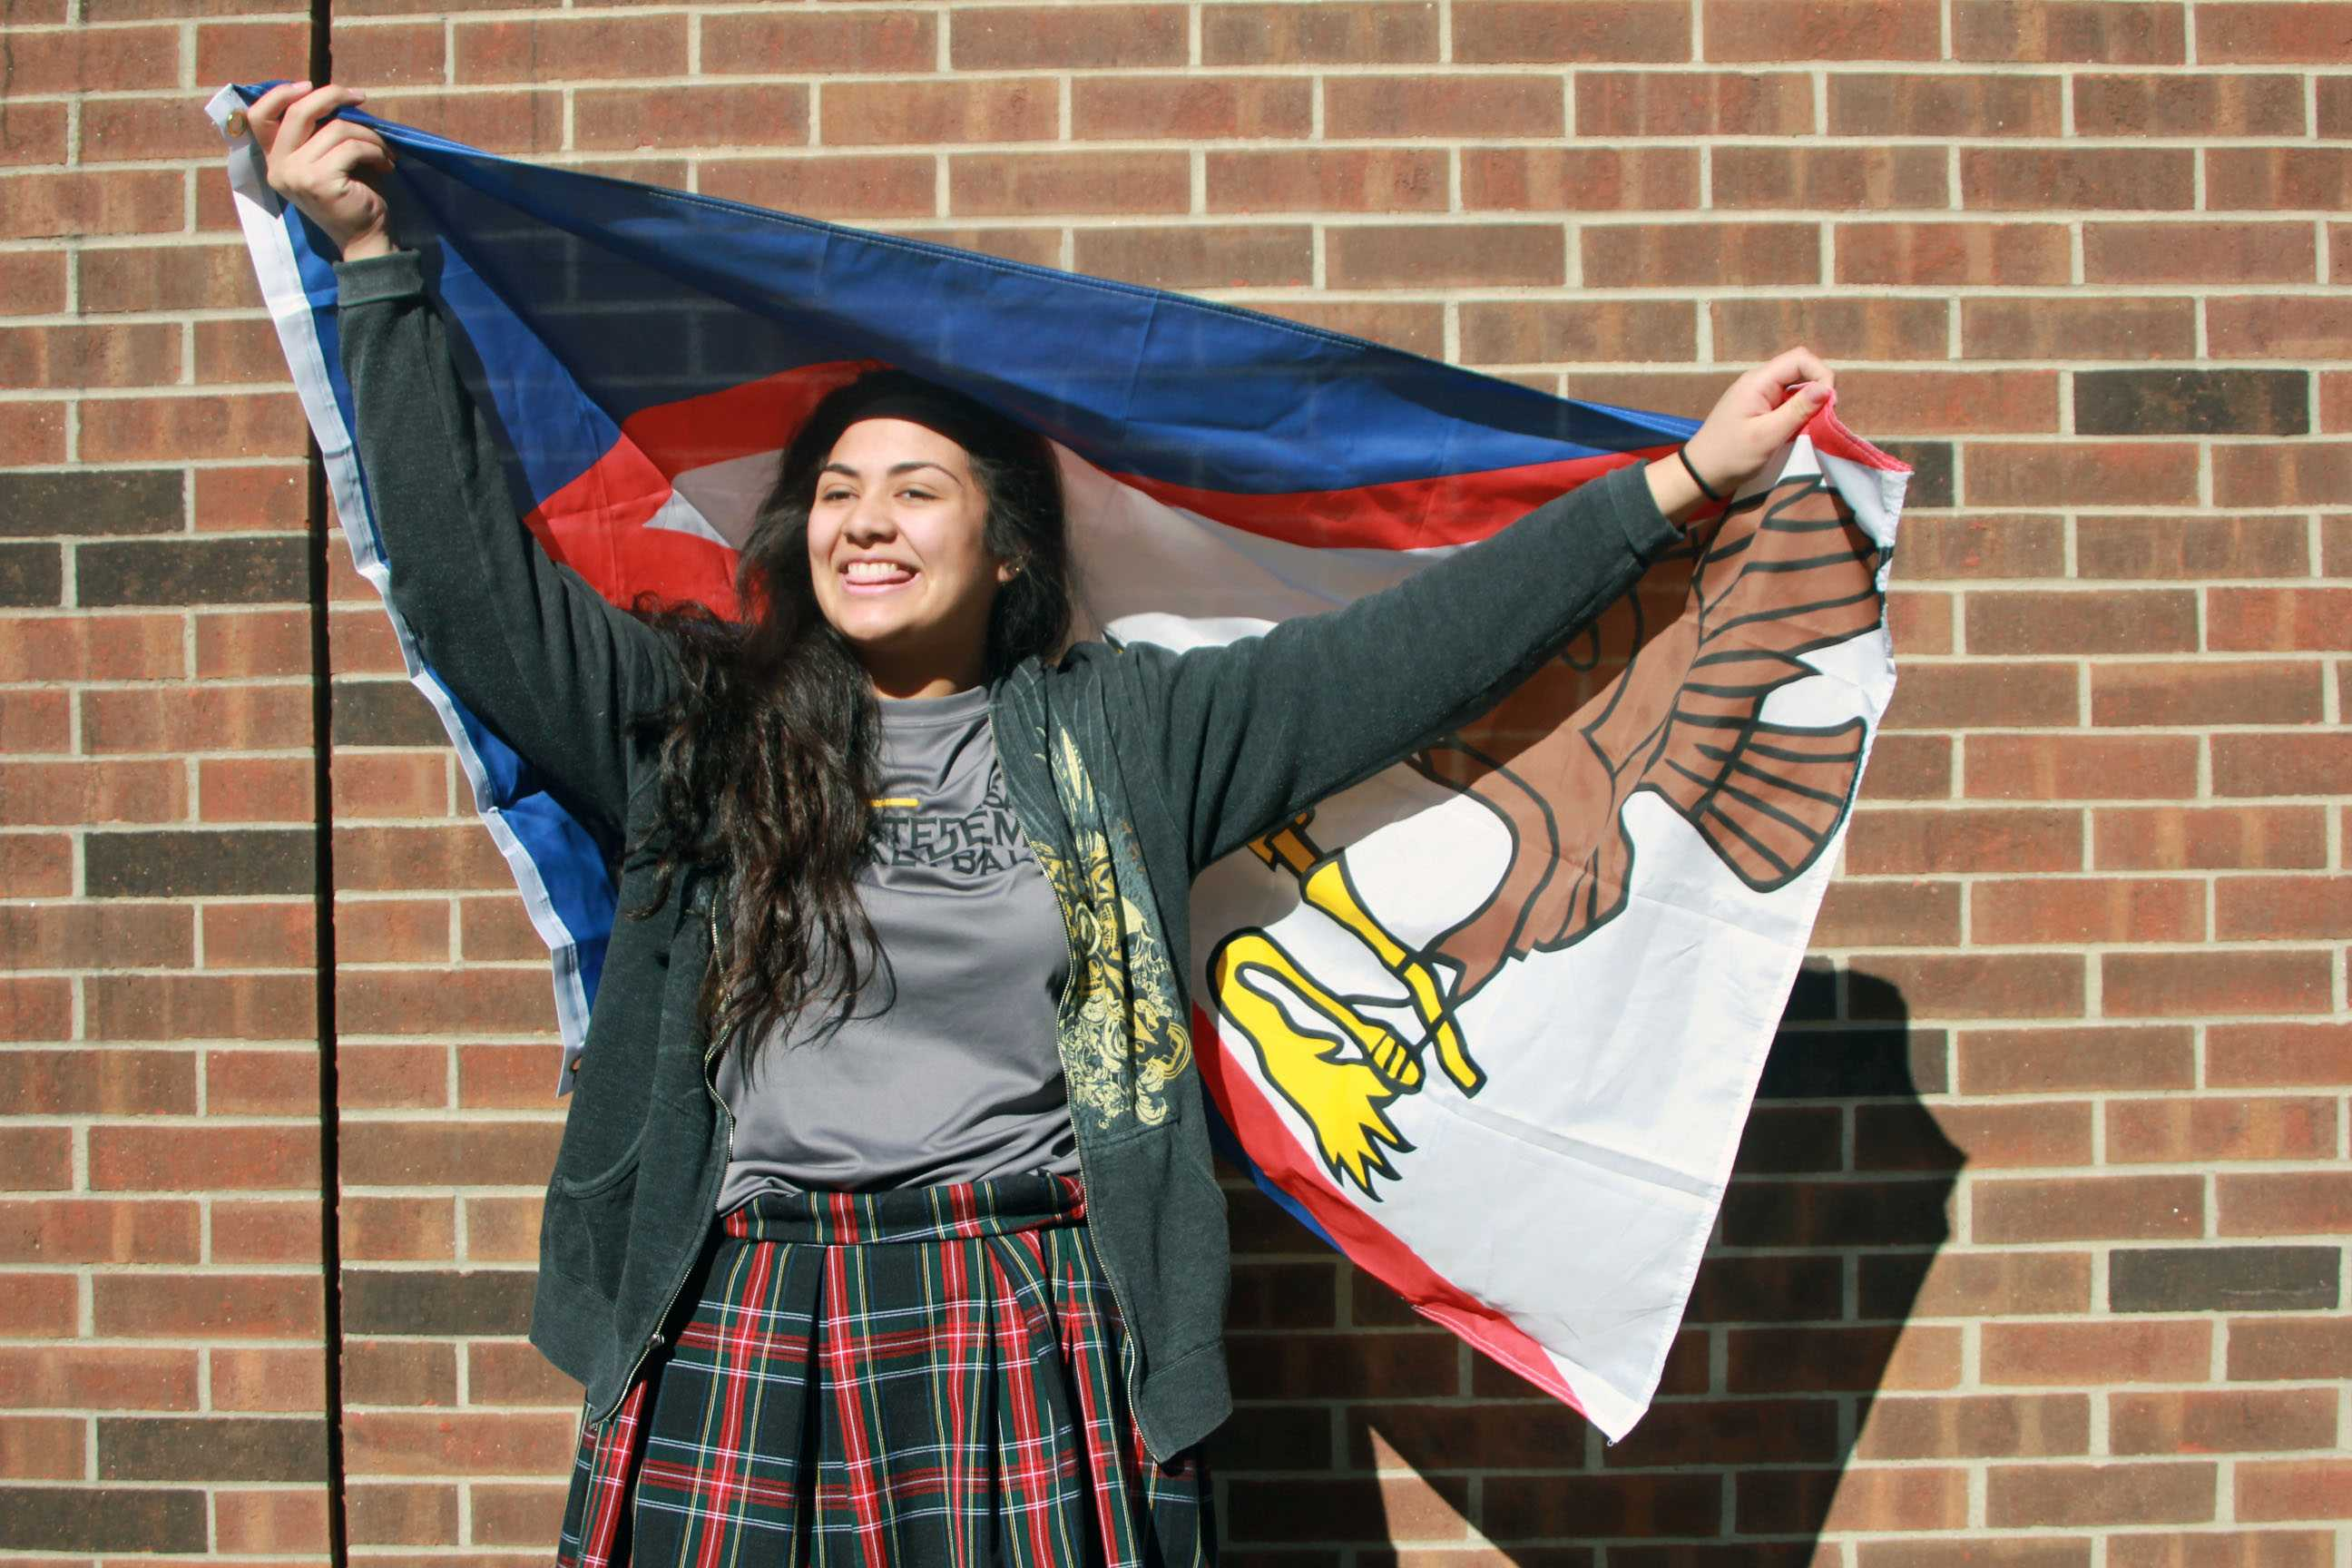 Freshman Cadina Palelei poses with the island of Samui flag. Samui is the second largest island in the gulf of Thailand. photo by Helen Krause